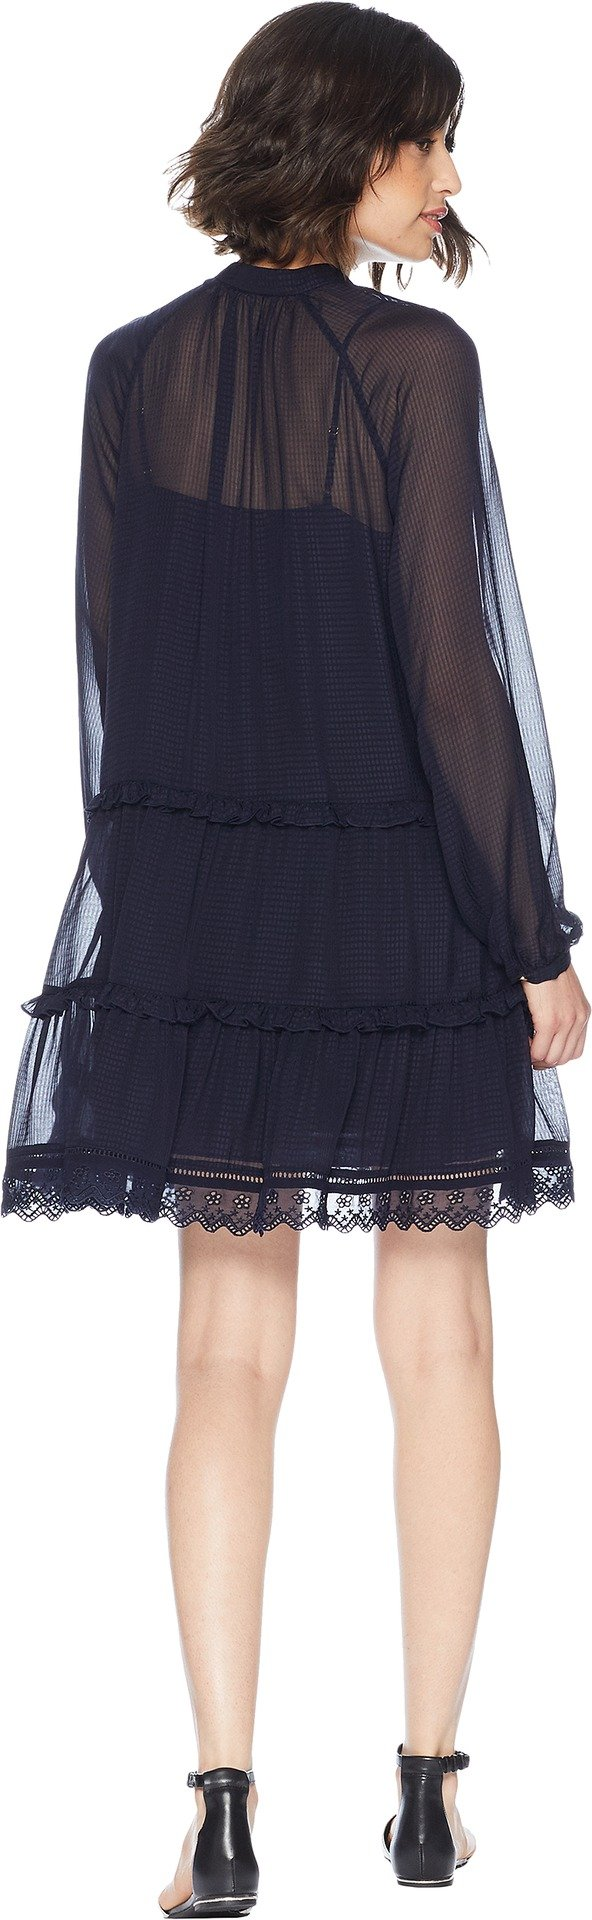 Juicy Couture Women's Seersucker Embroidered Trim Dress Zenith Petite/X-Small by Juicy Couture (Image #3)